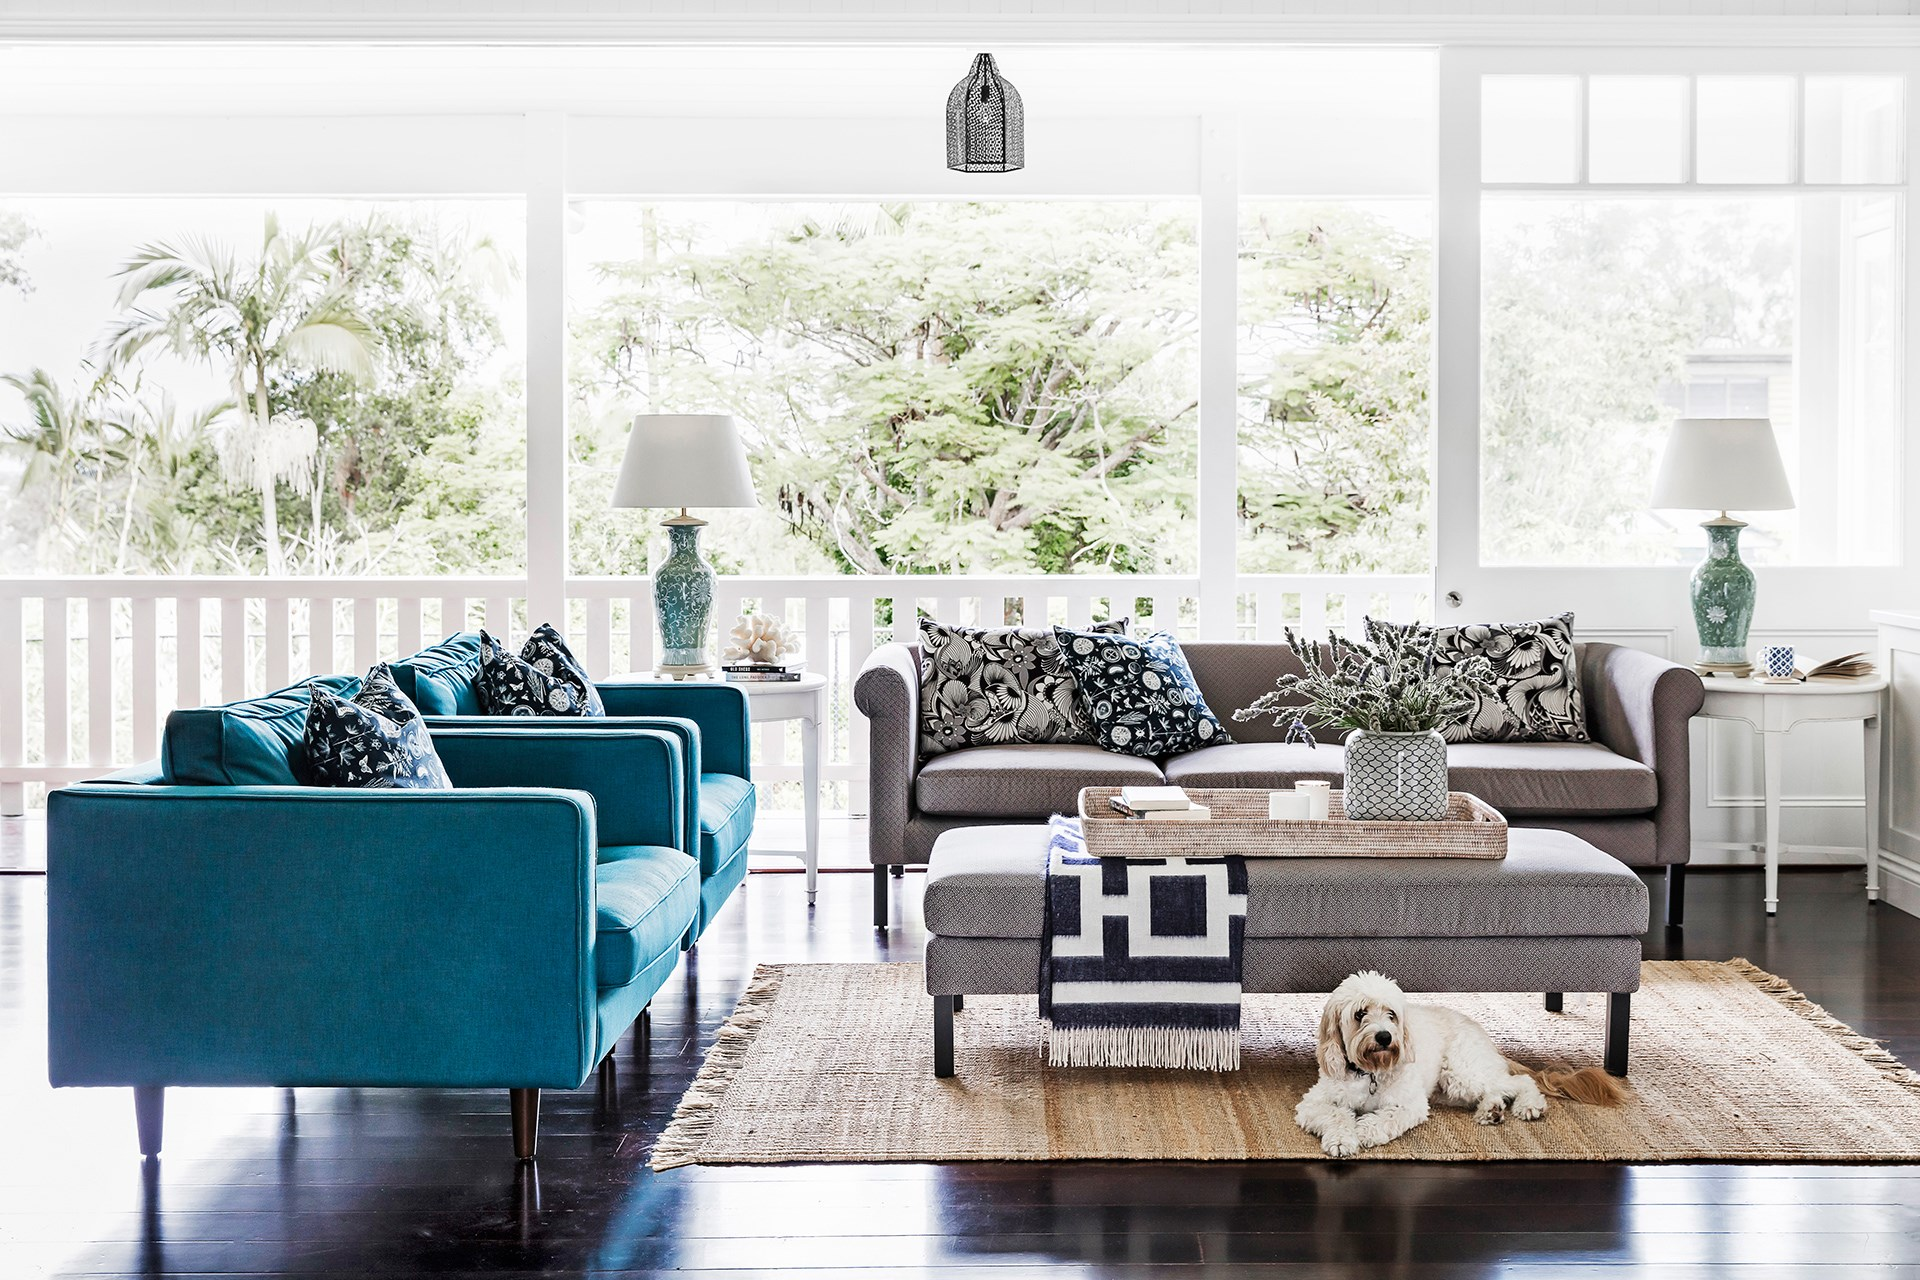 The airy living room in this [refreshed 1920s Queenslander](http://www.homestolove.com.au/a-refreshed-1920s-queenslander-4363) exudes a seaside holiday vibe with its free-flowing design and Hamptons style decor. Photo: Maree Homer / Australian House & Garden